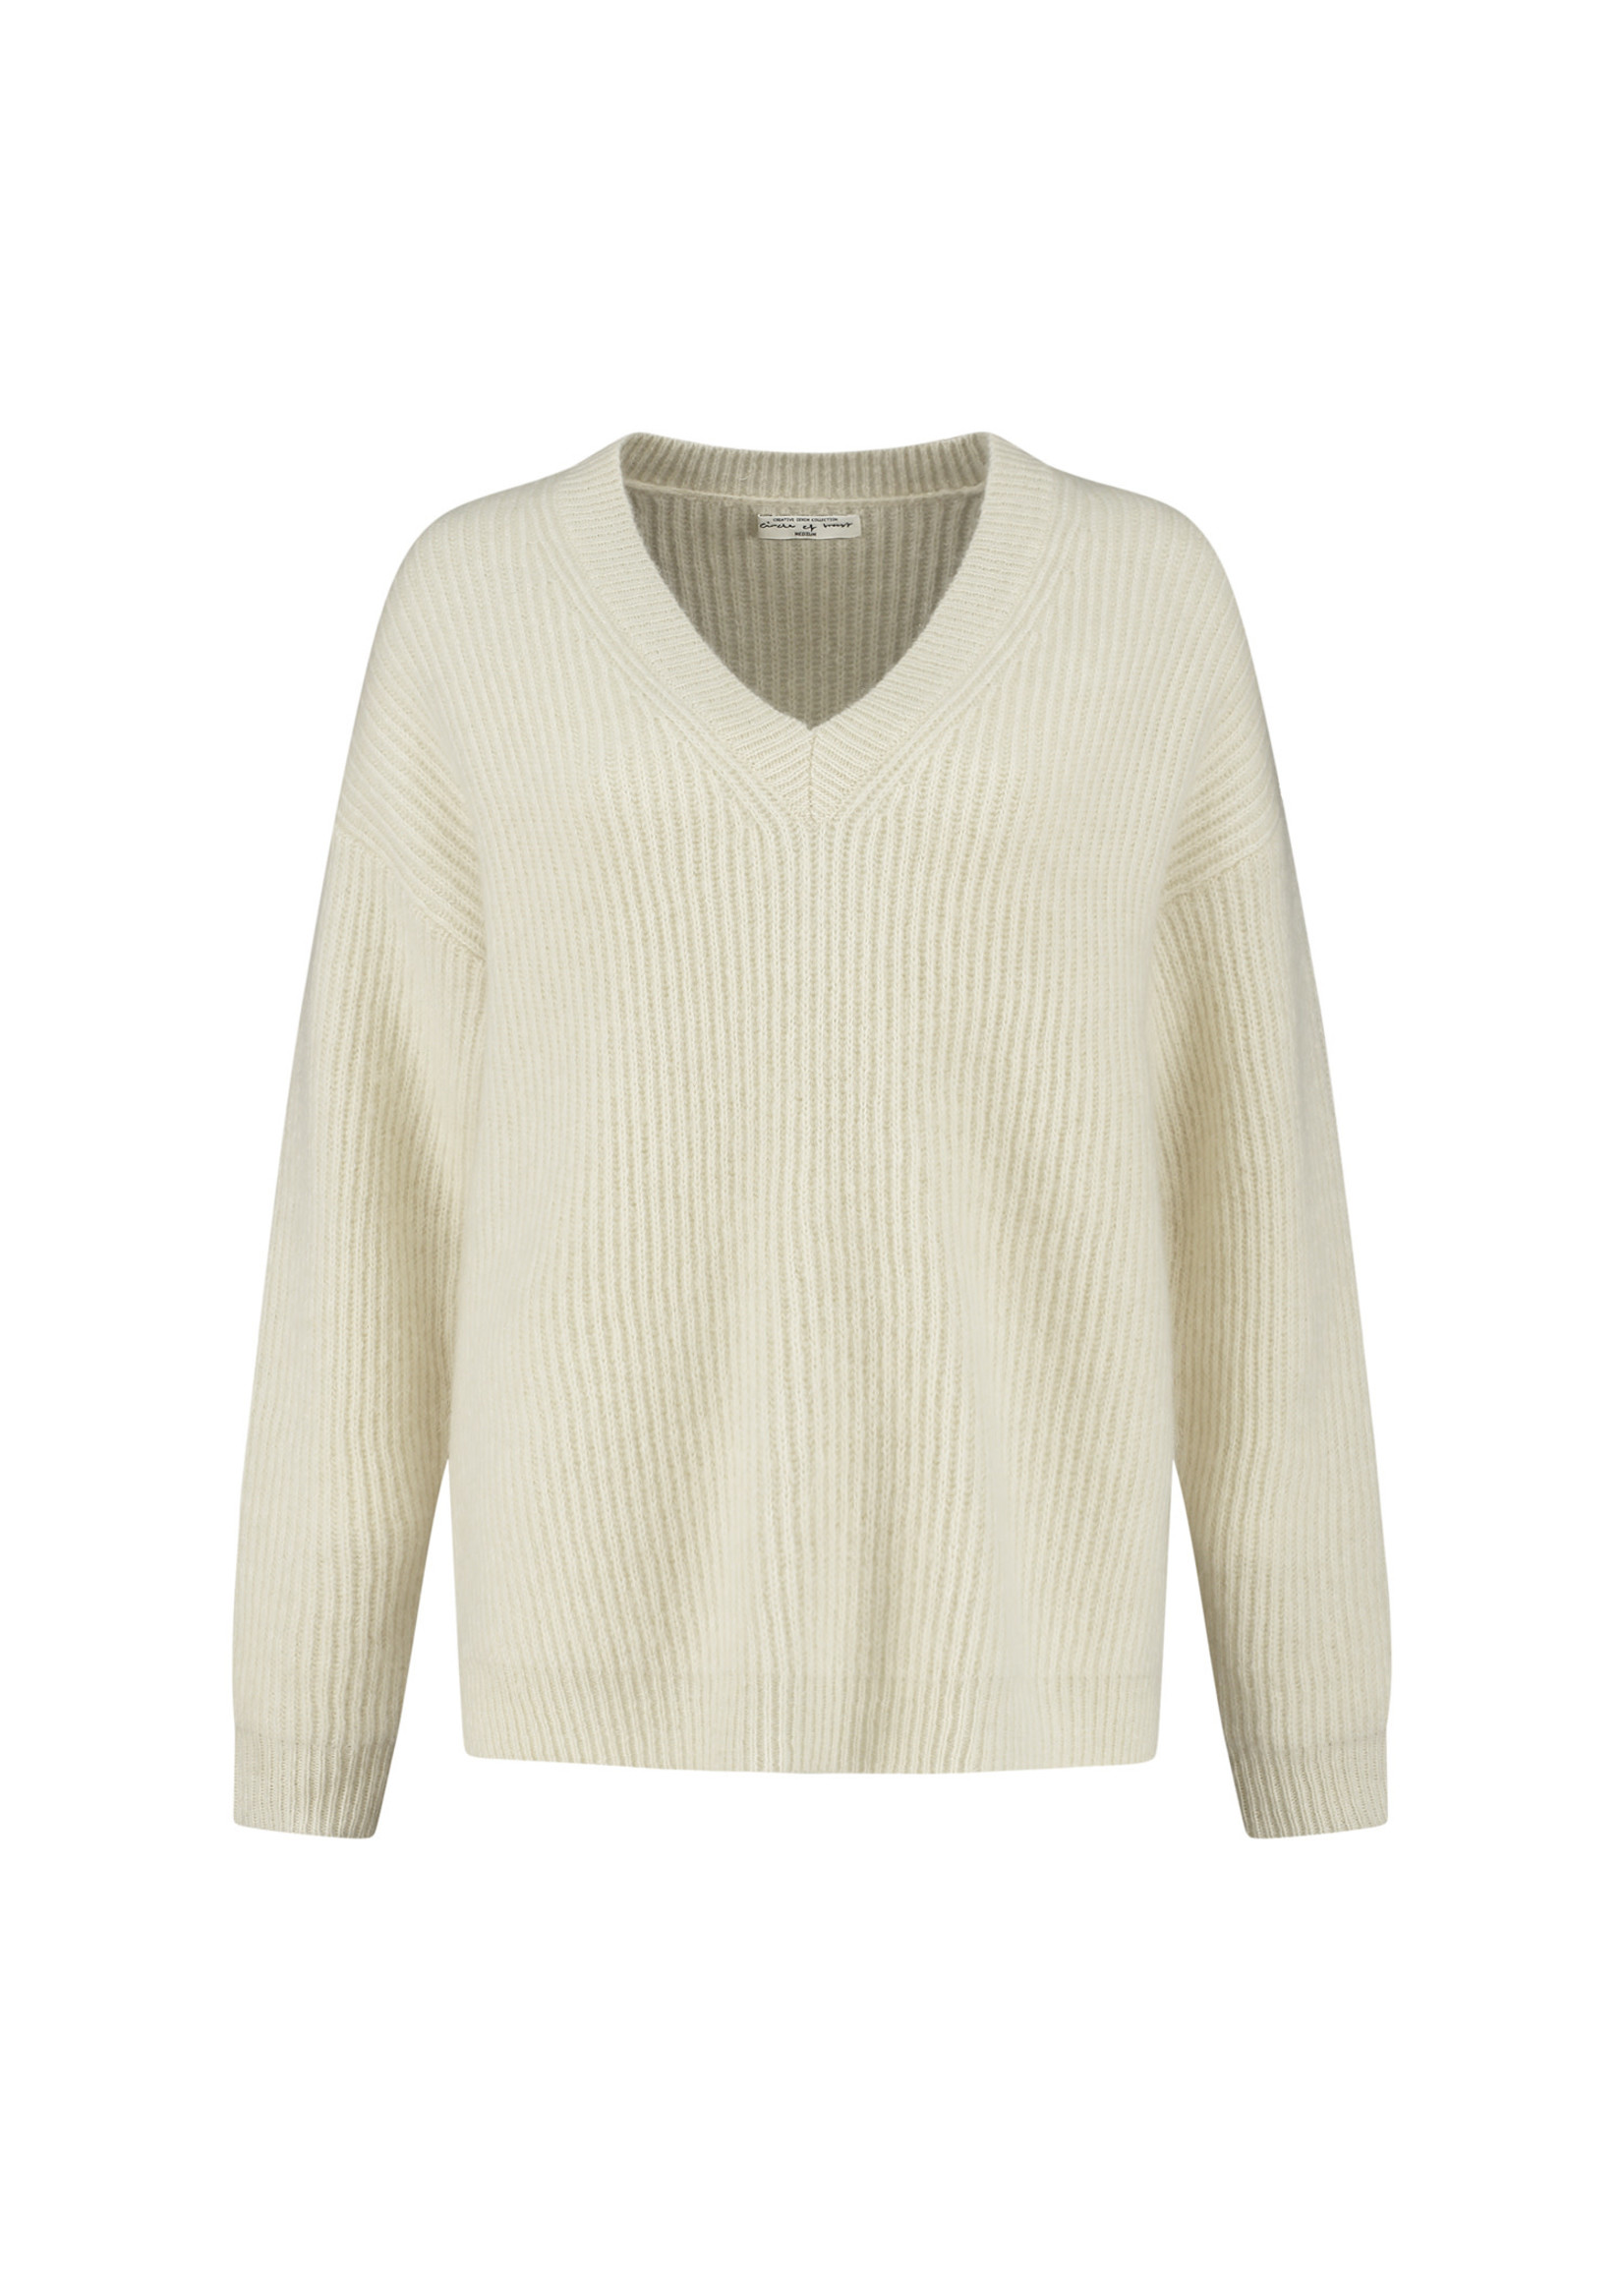 CIRCLE OF TRUST EMMY KNIT antique white